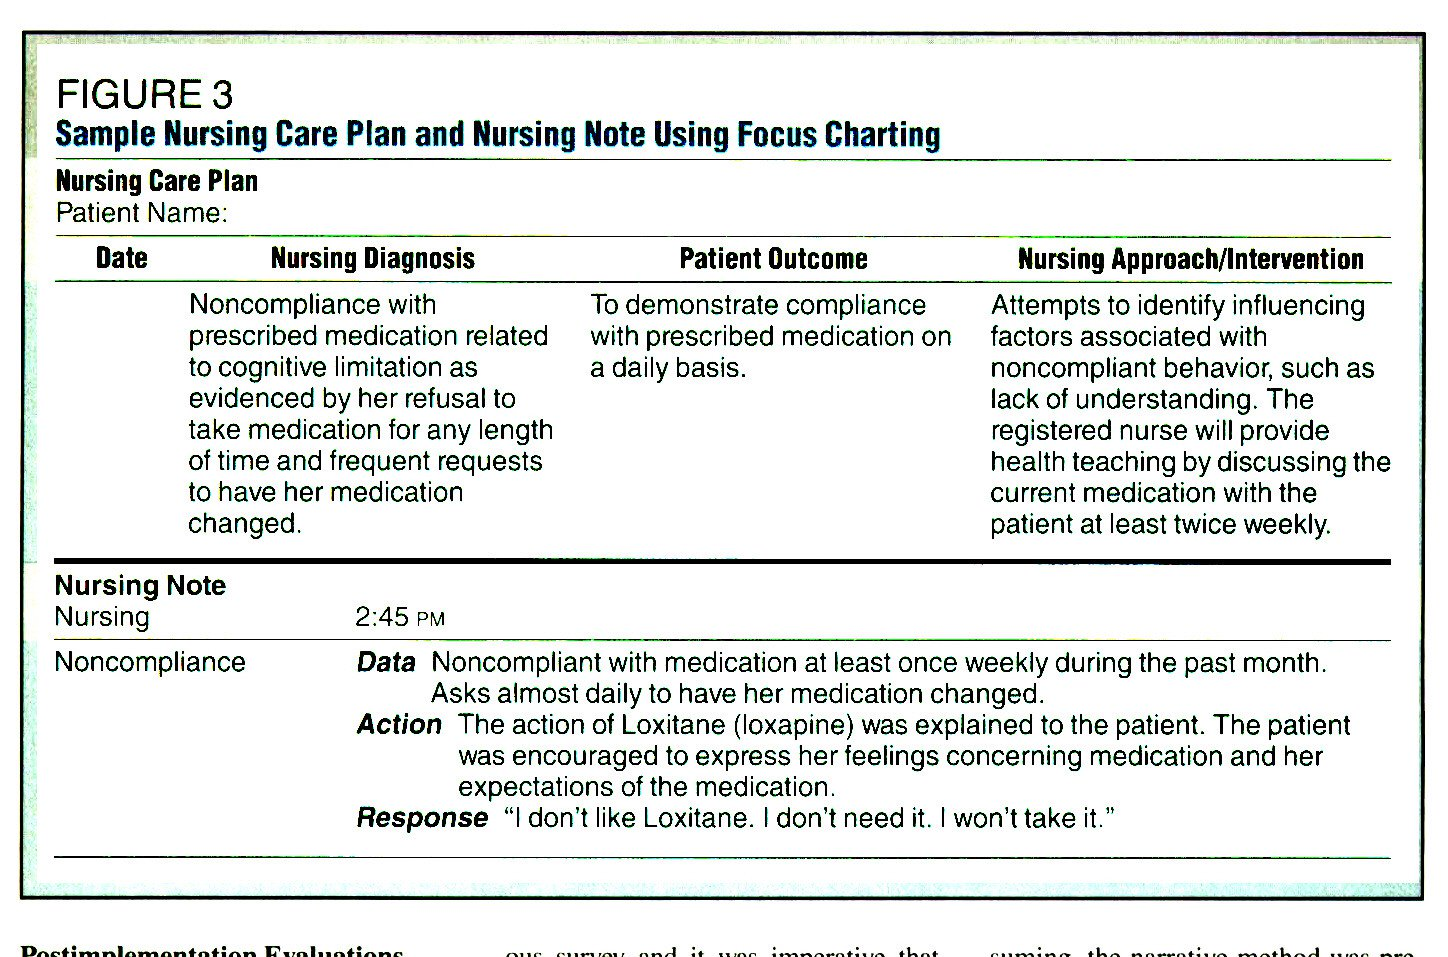 FOCUS CHARTING® in a Psychiatric Facility